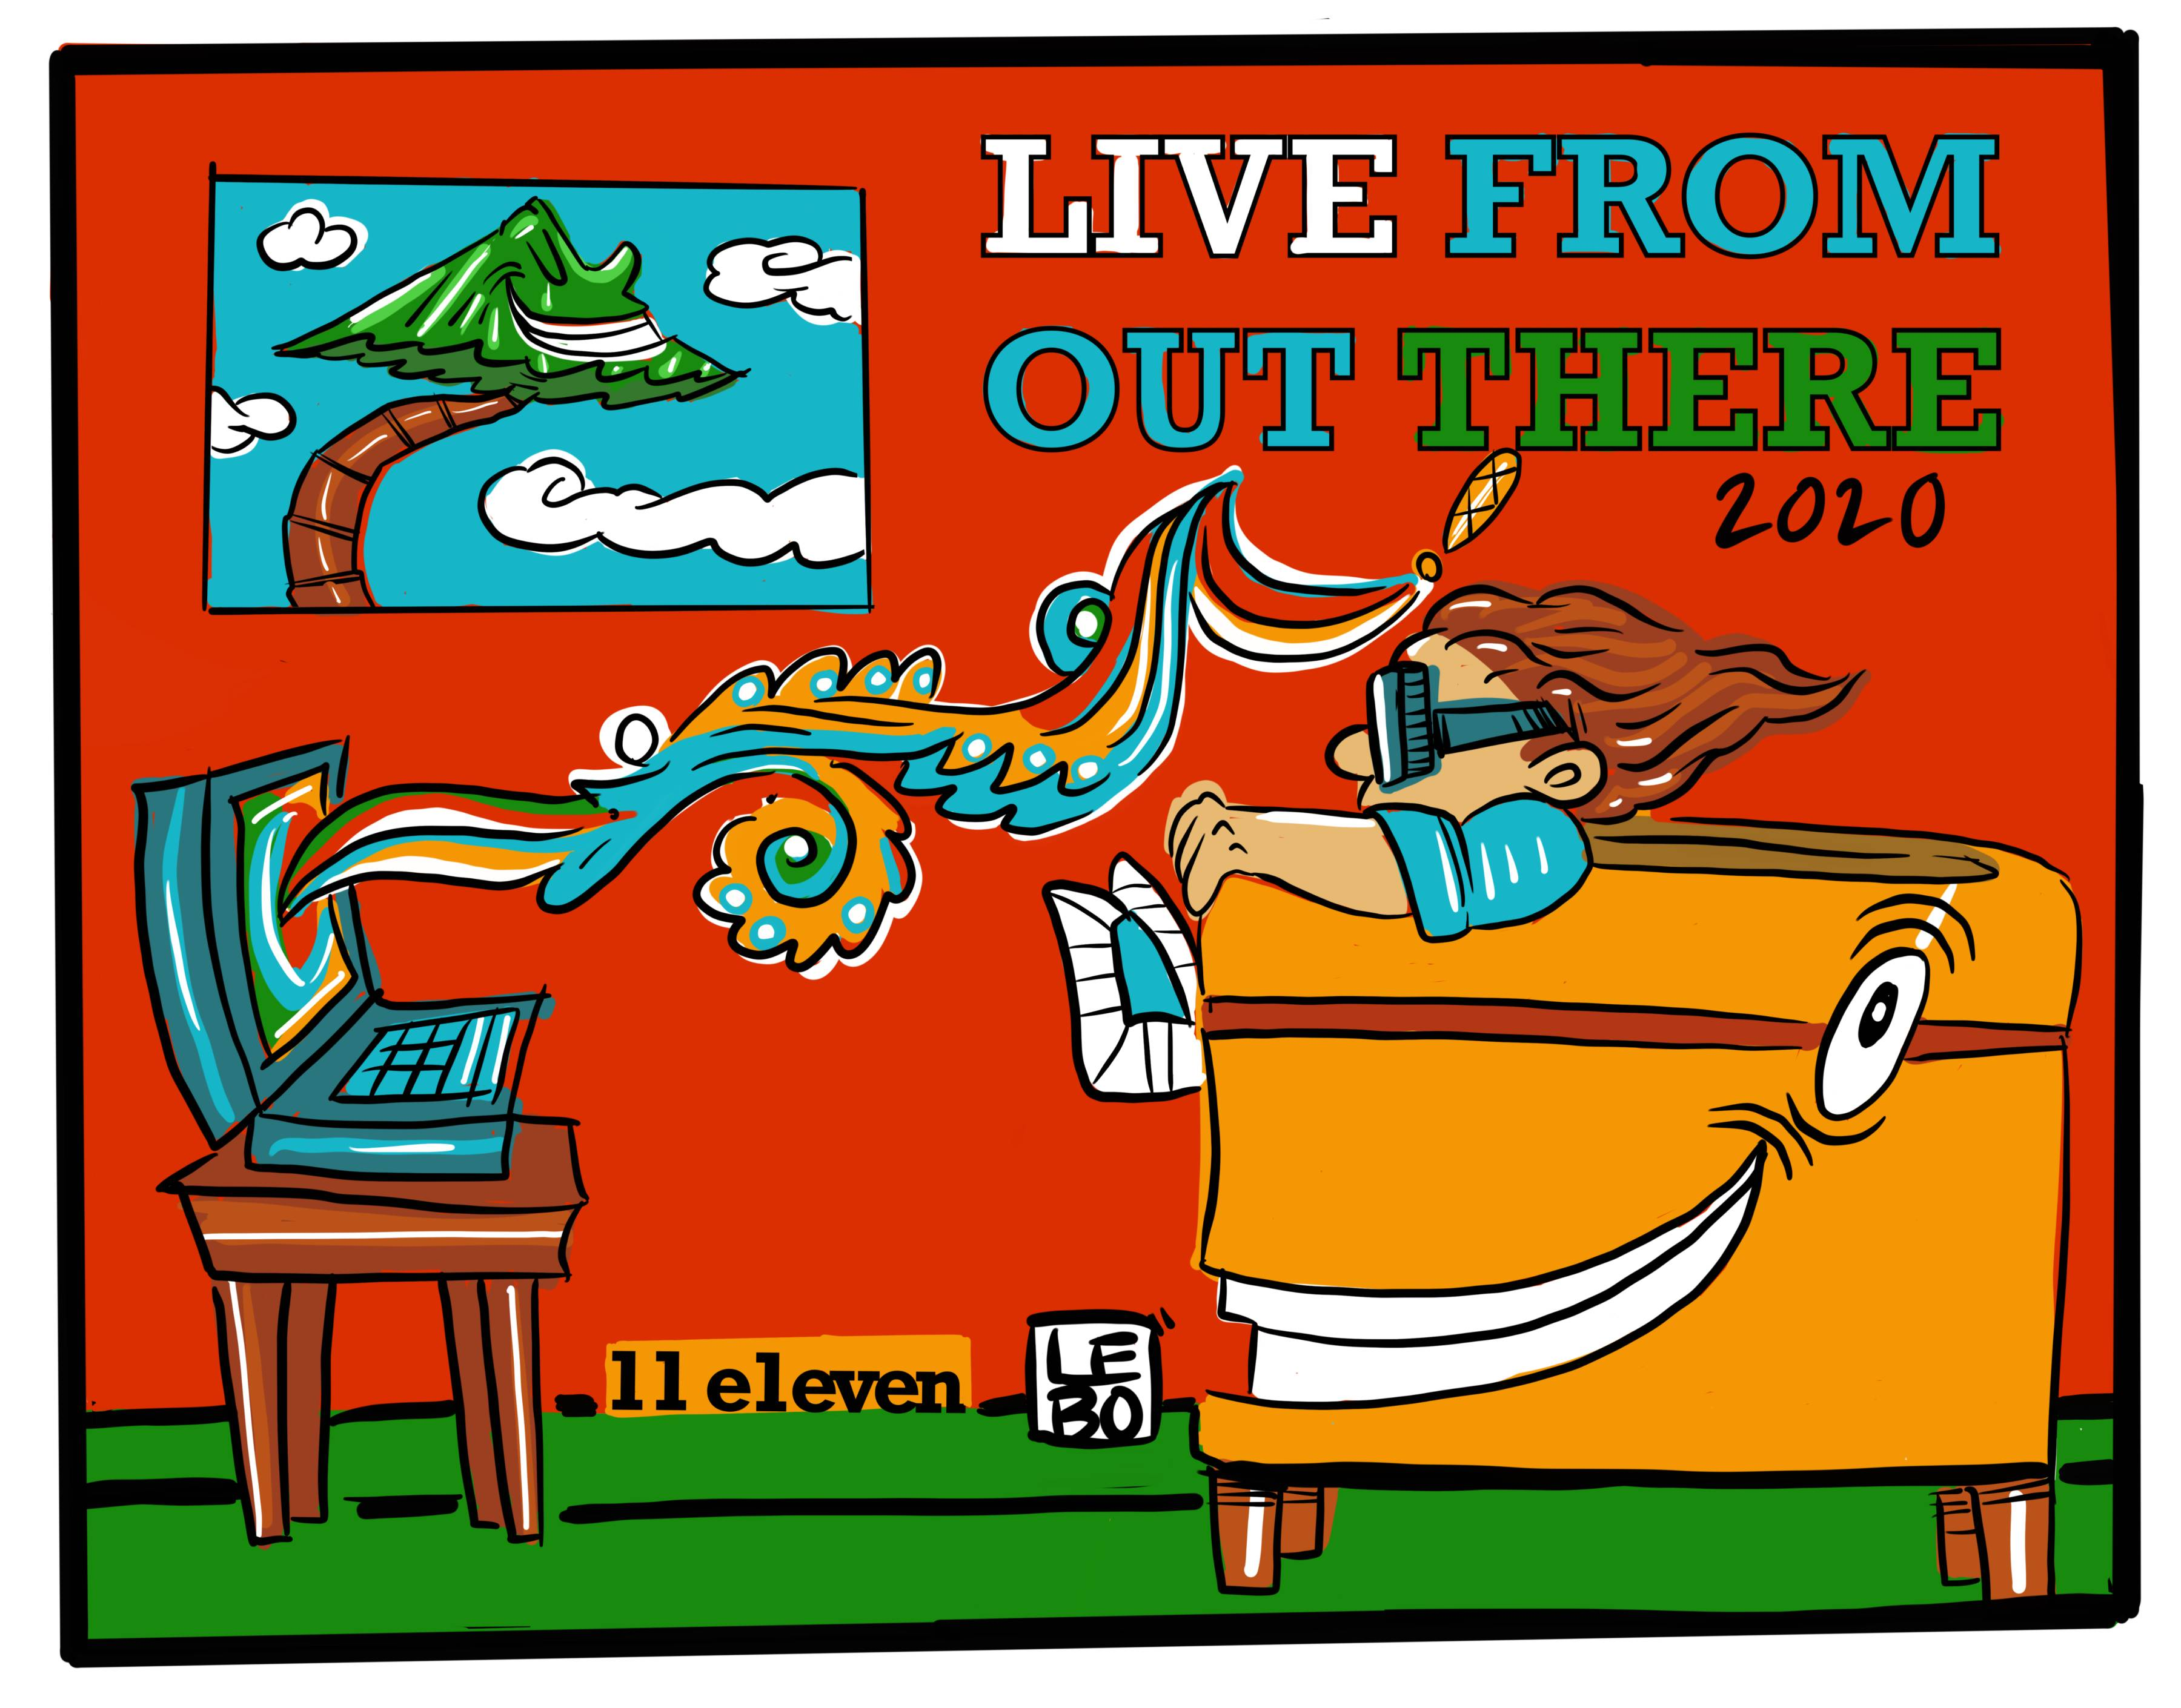 Live From Out There - Lebo Collaboration - Poster